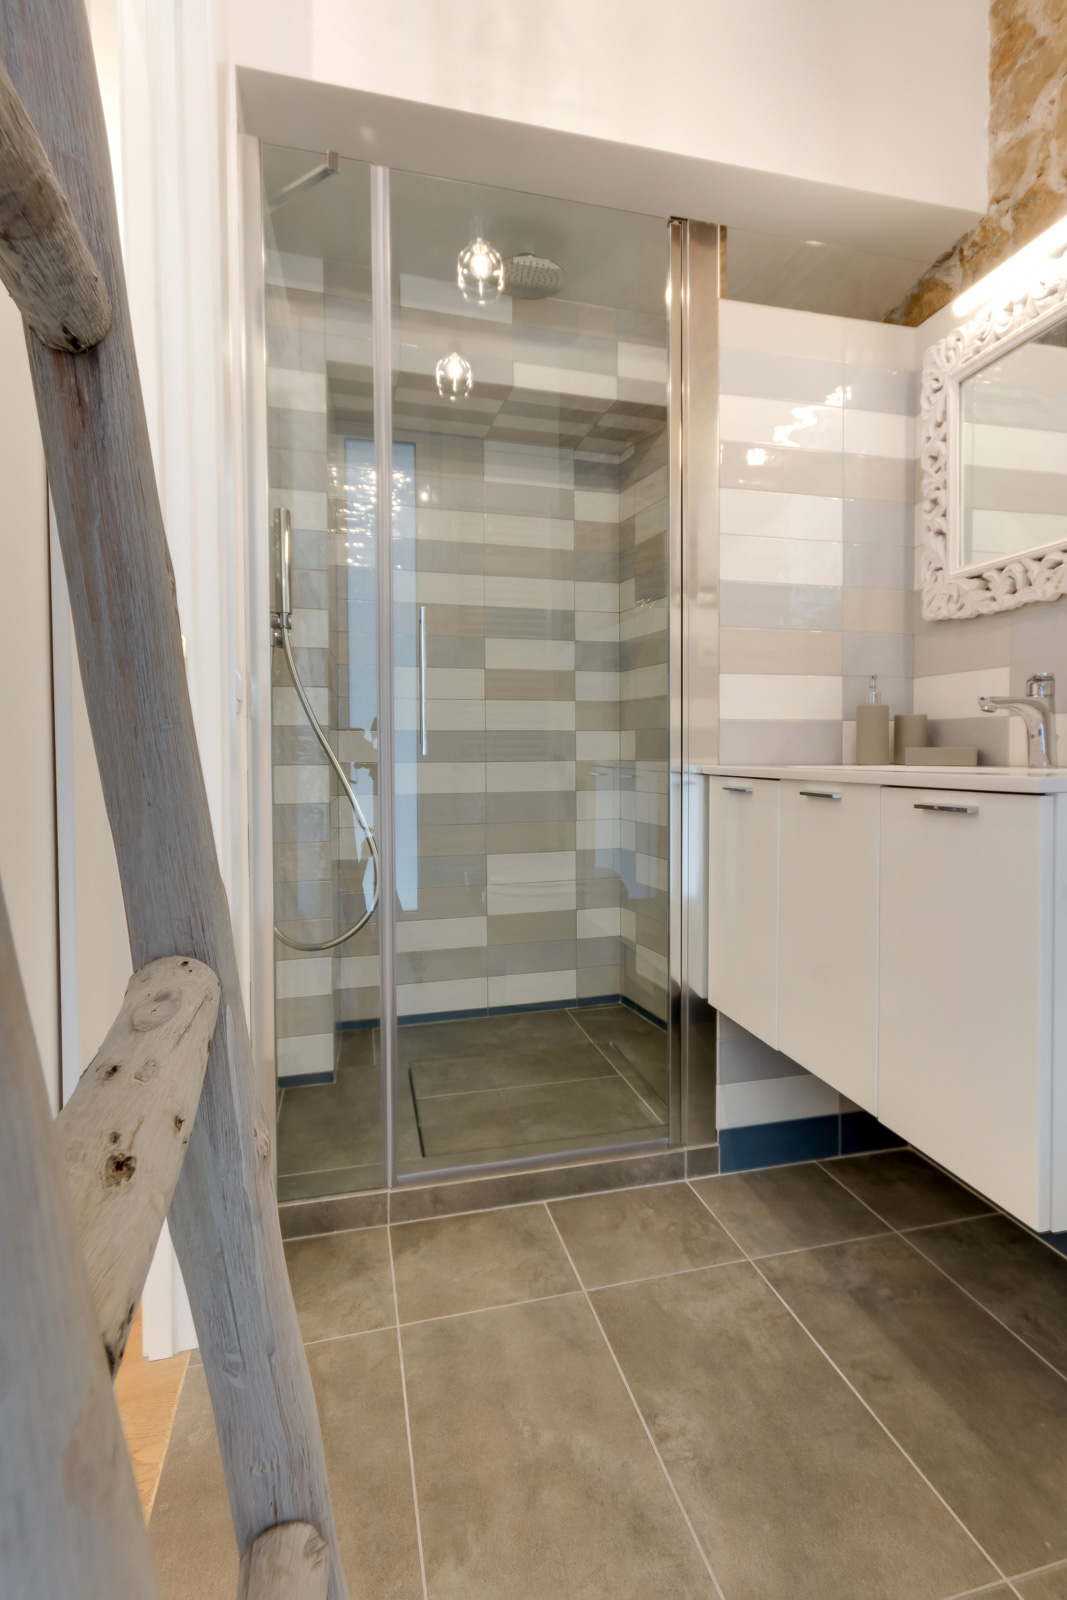 Via Sistina Apartment bathroom walk-in shower